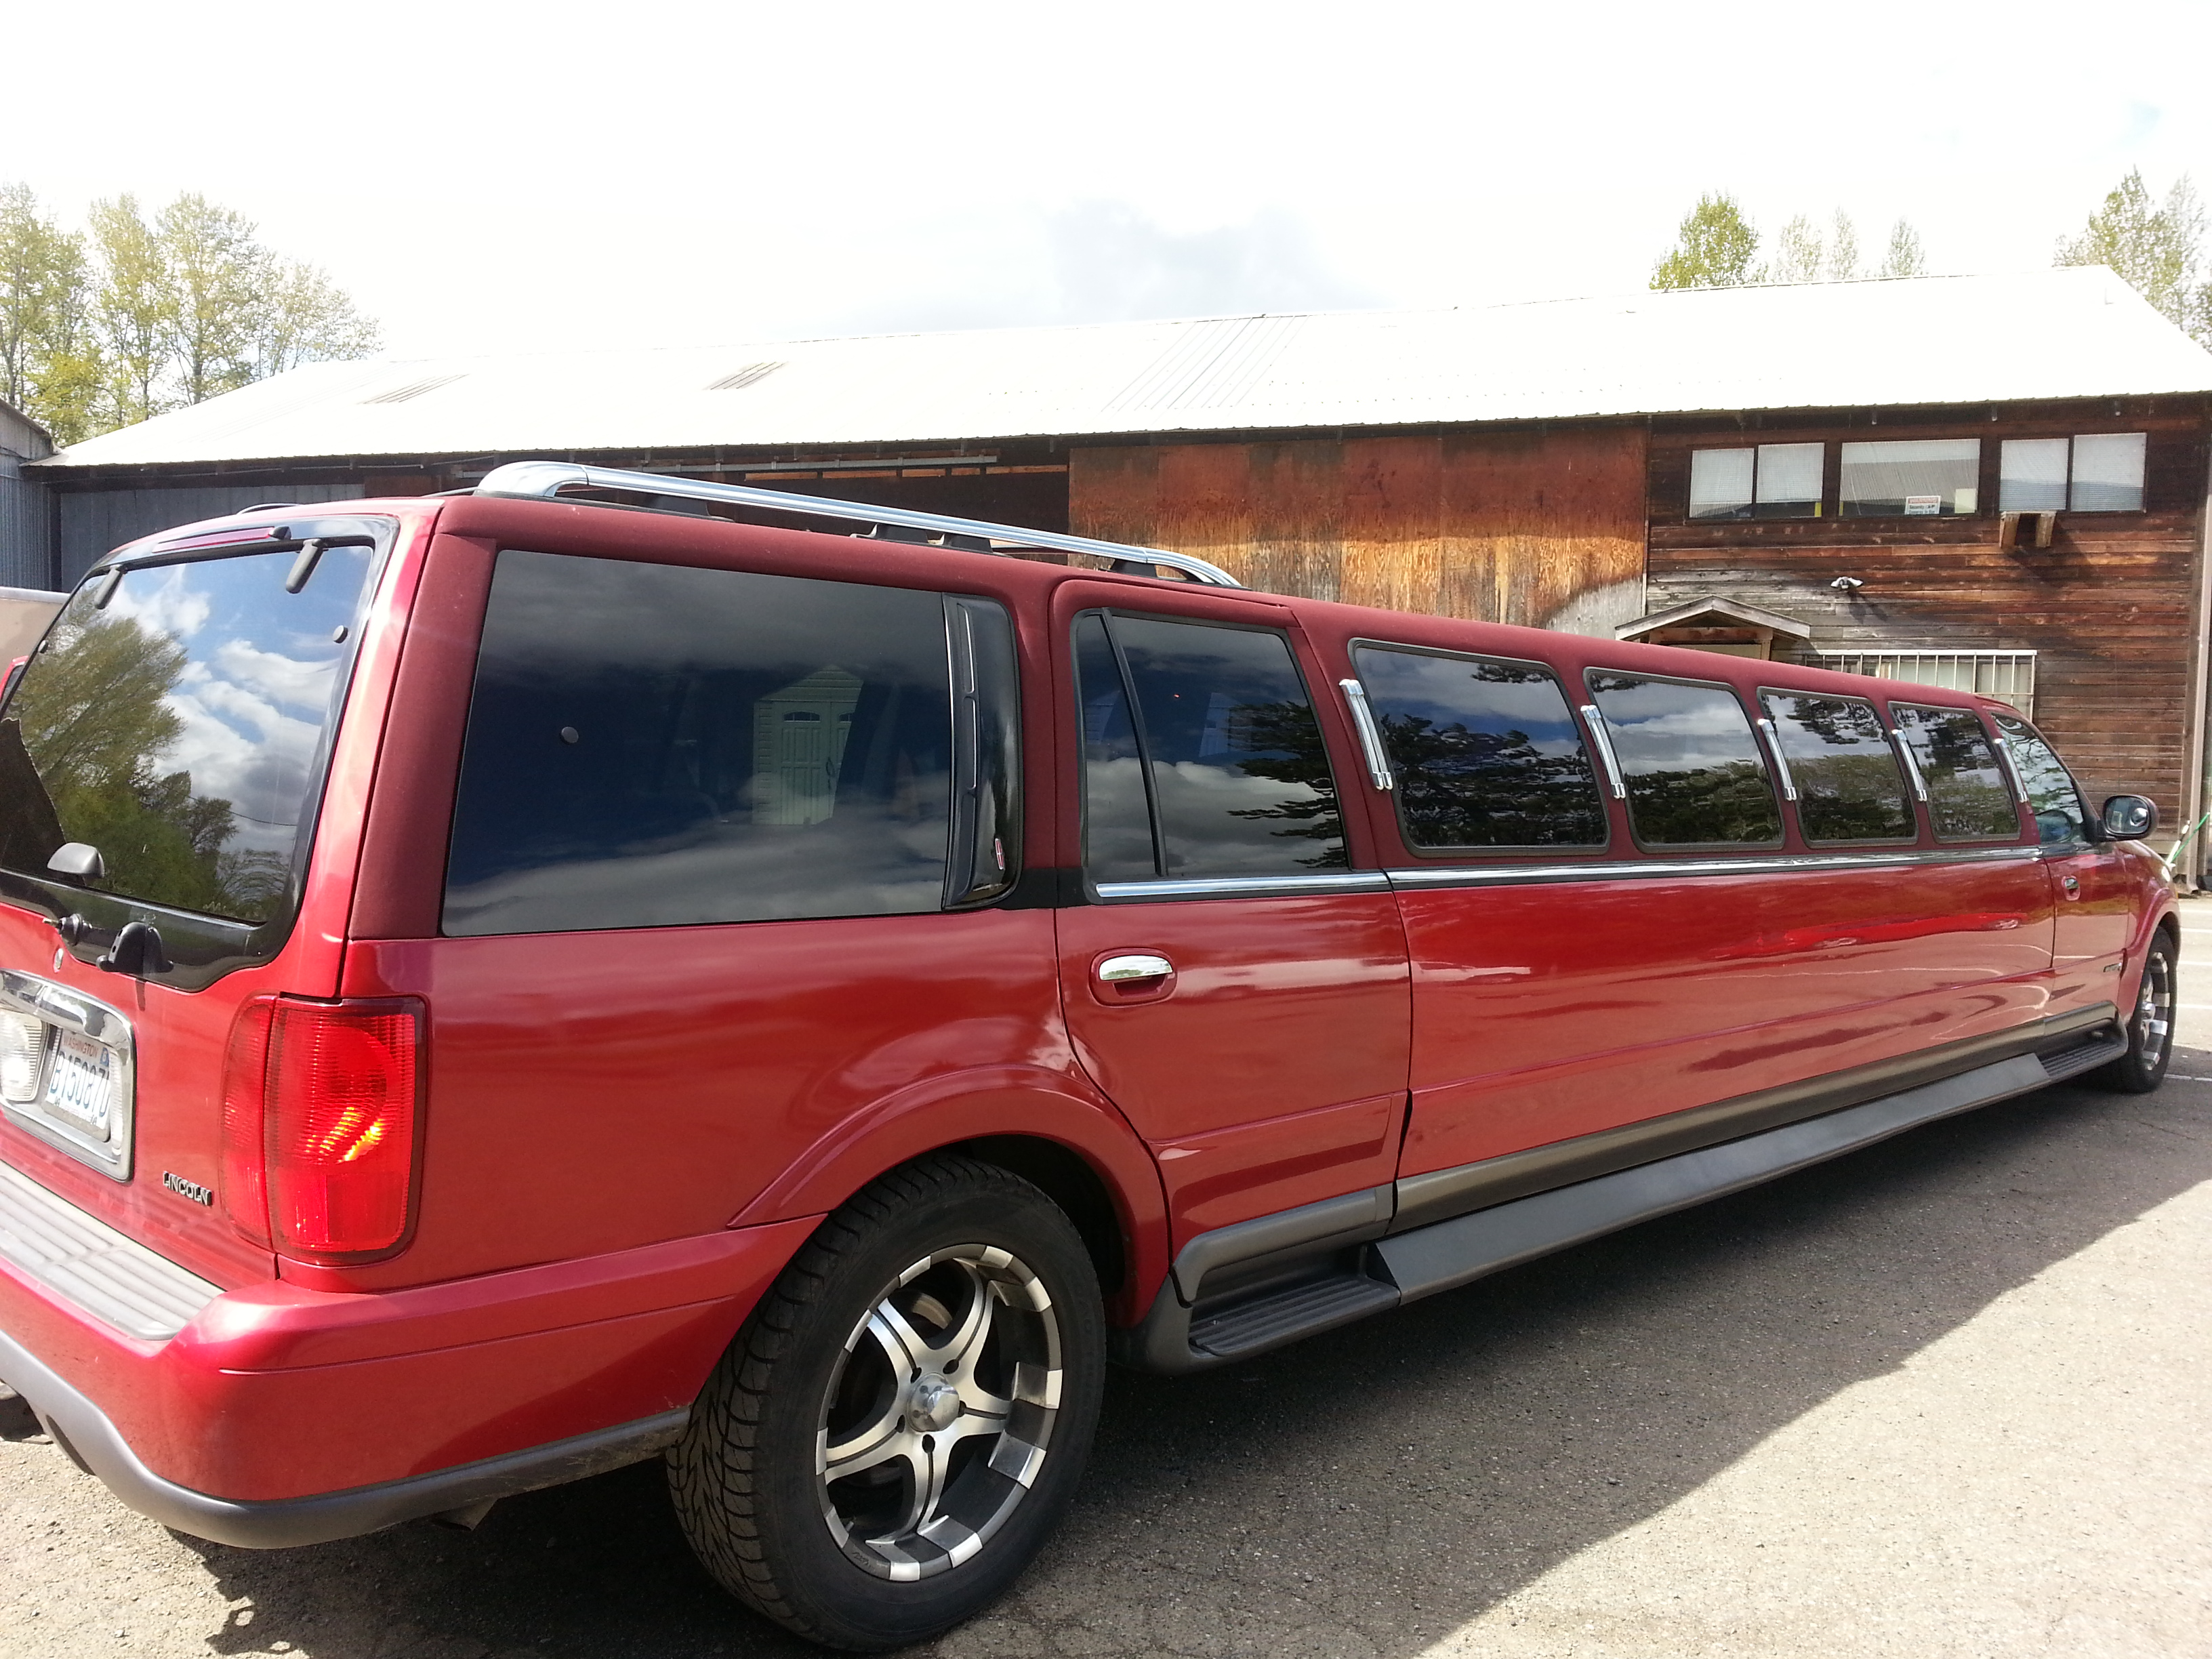 16 passenger stretched suv limo red romeo cordial limousine and car service seattlecordial. Black Bedroom Furniture Sets. Home Design Ideas